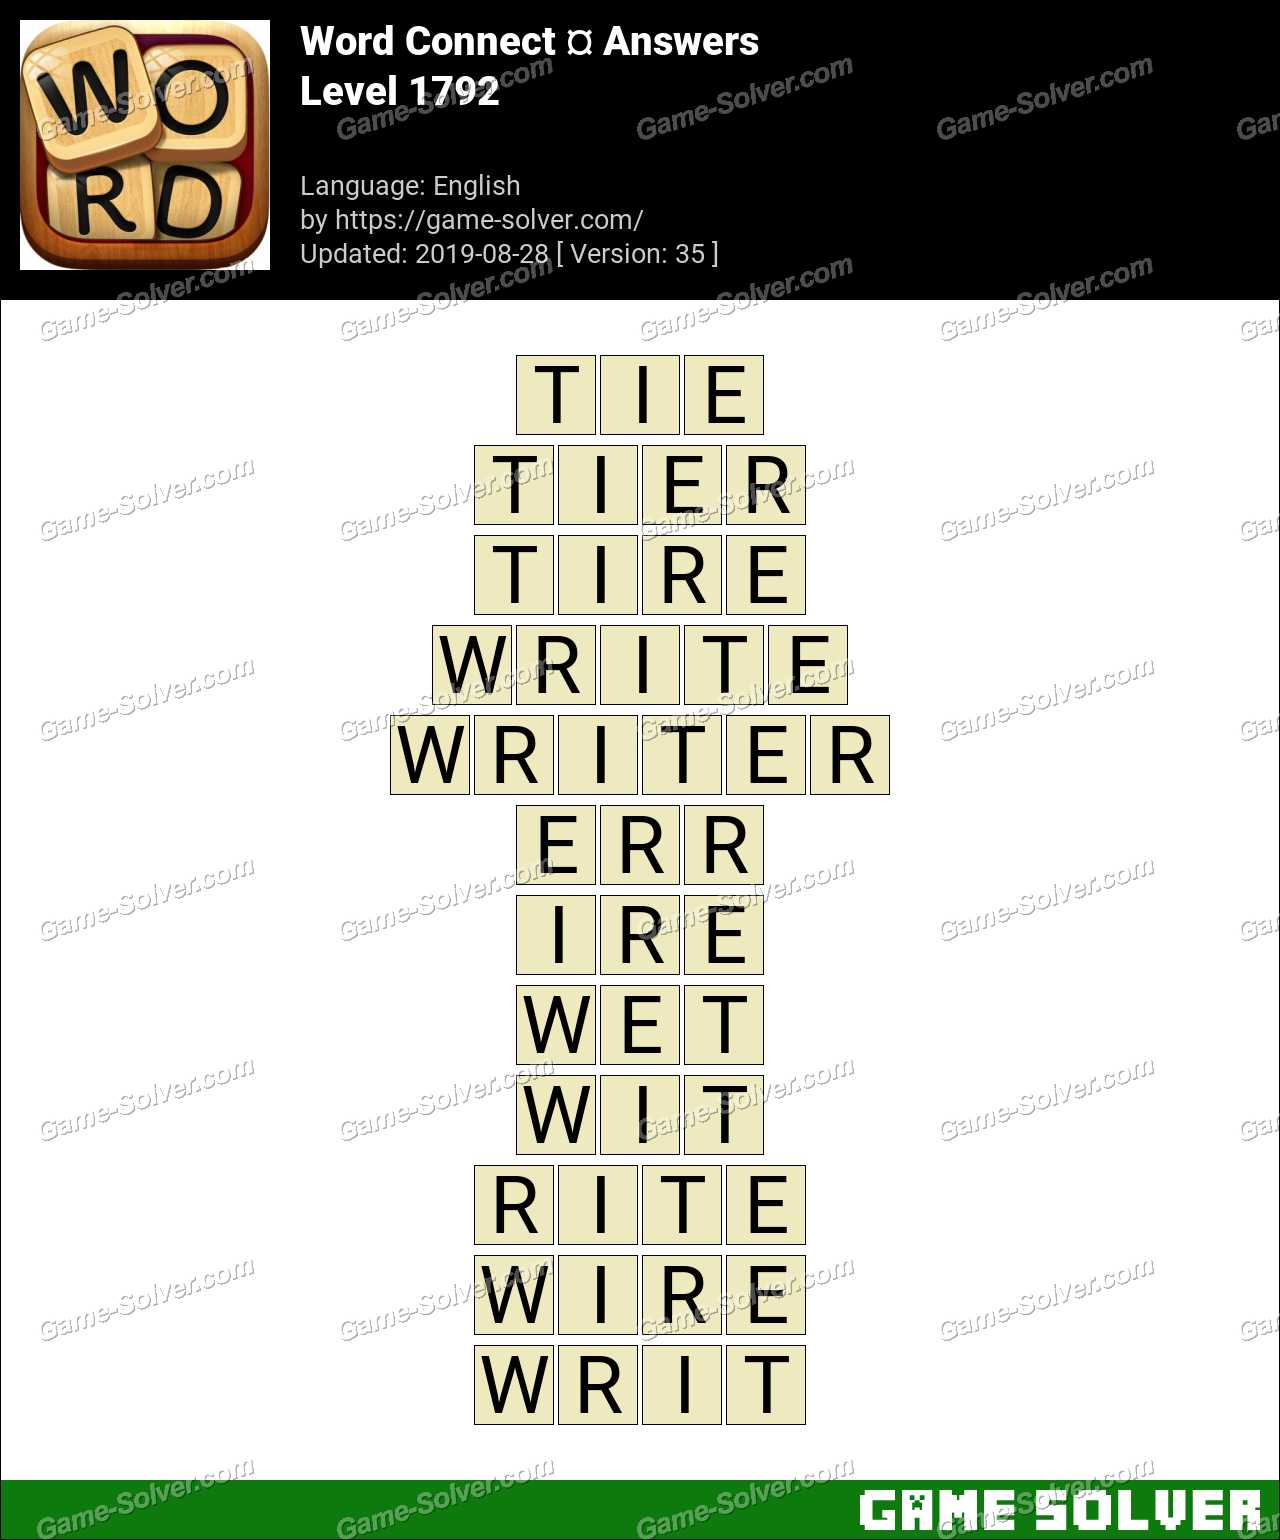 Word Connect Level 1792 Answers